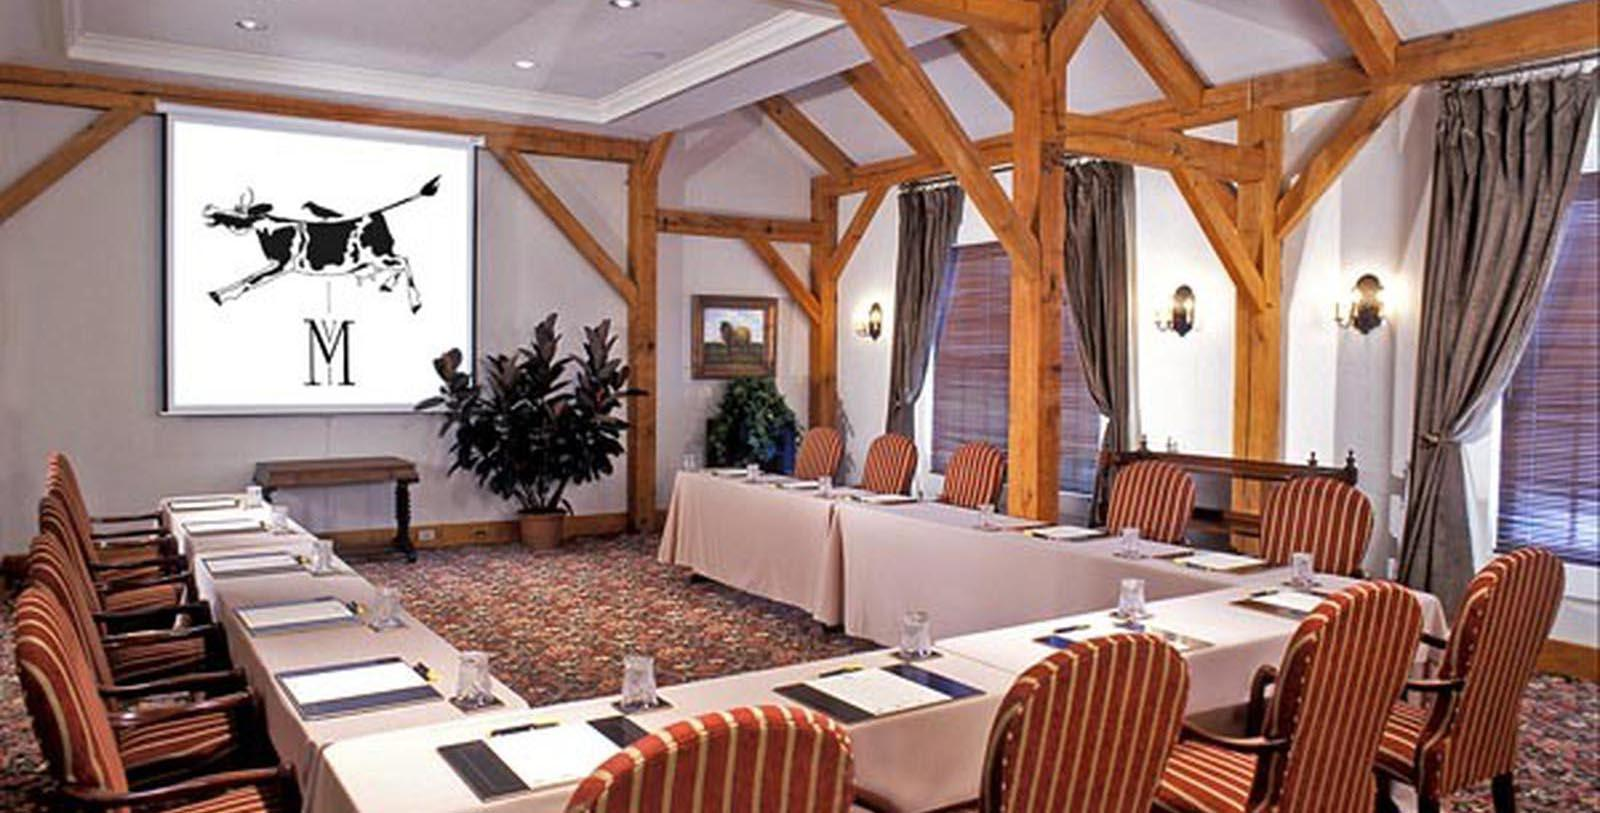 Image of Meeting Space The Inn at Montchanin Village, 1799, Member of Historic Hotels of America, in Montchanin, Delaware, Discover